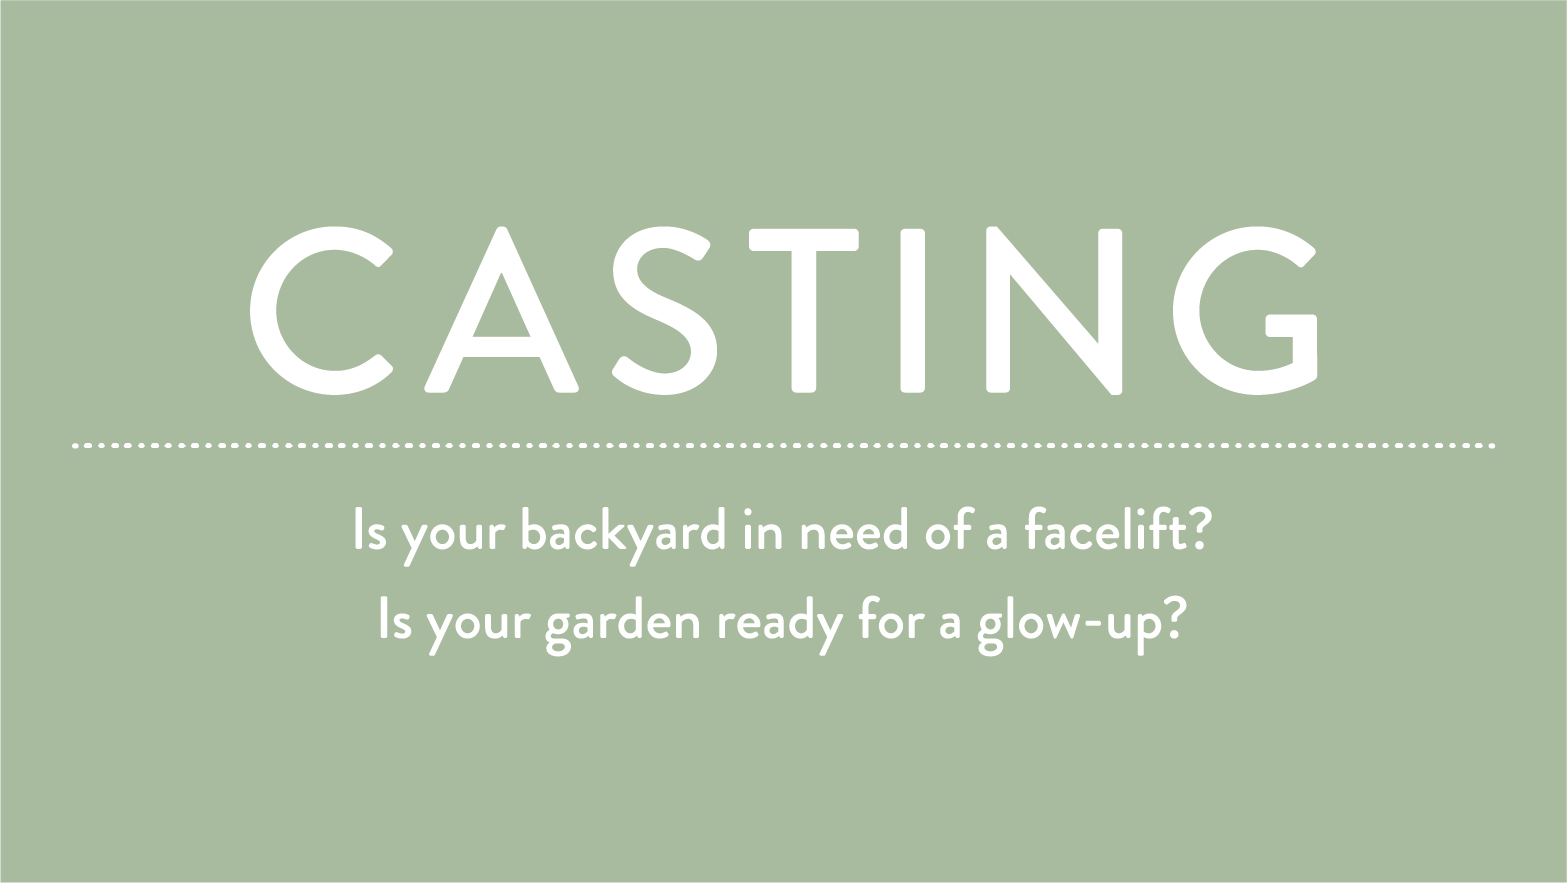 Casting: Is your backyard in need of a facelift? Is your garden ready for a glow-up?